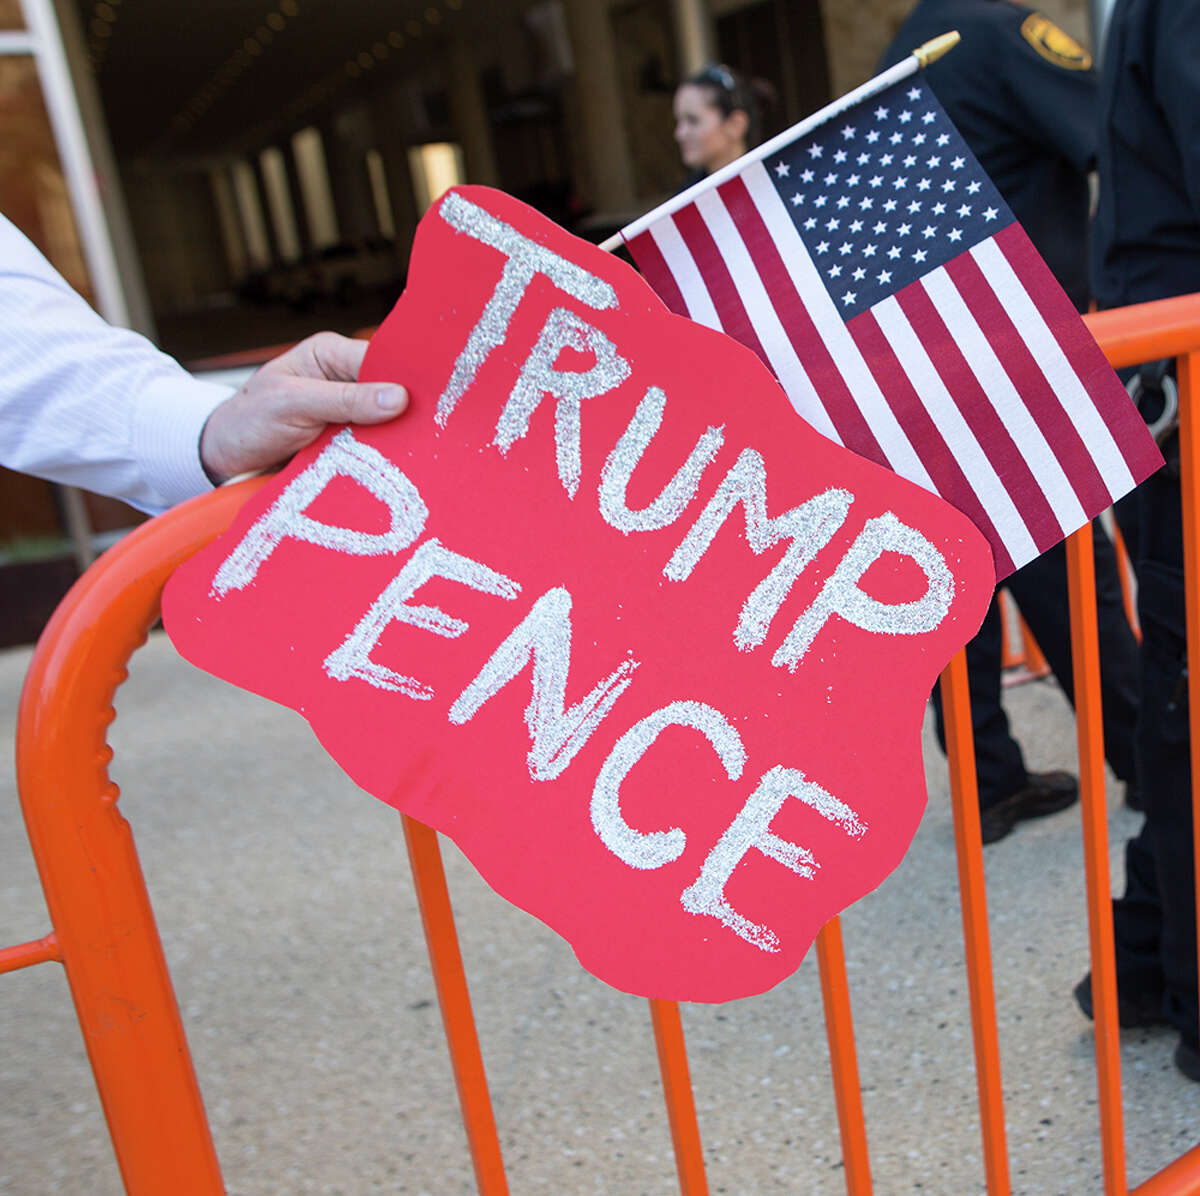 Protesters and supporters gather outside the Grand Hyatt Regency where Republican presidential nominee Donald Trump attends a fundraiser in San Antonio, Tuesday, Oct. 11, 2016.